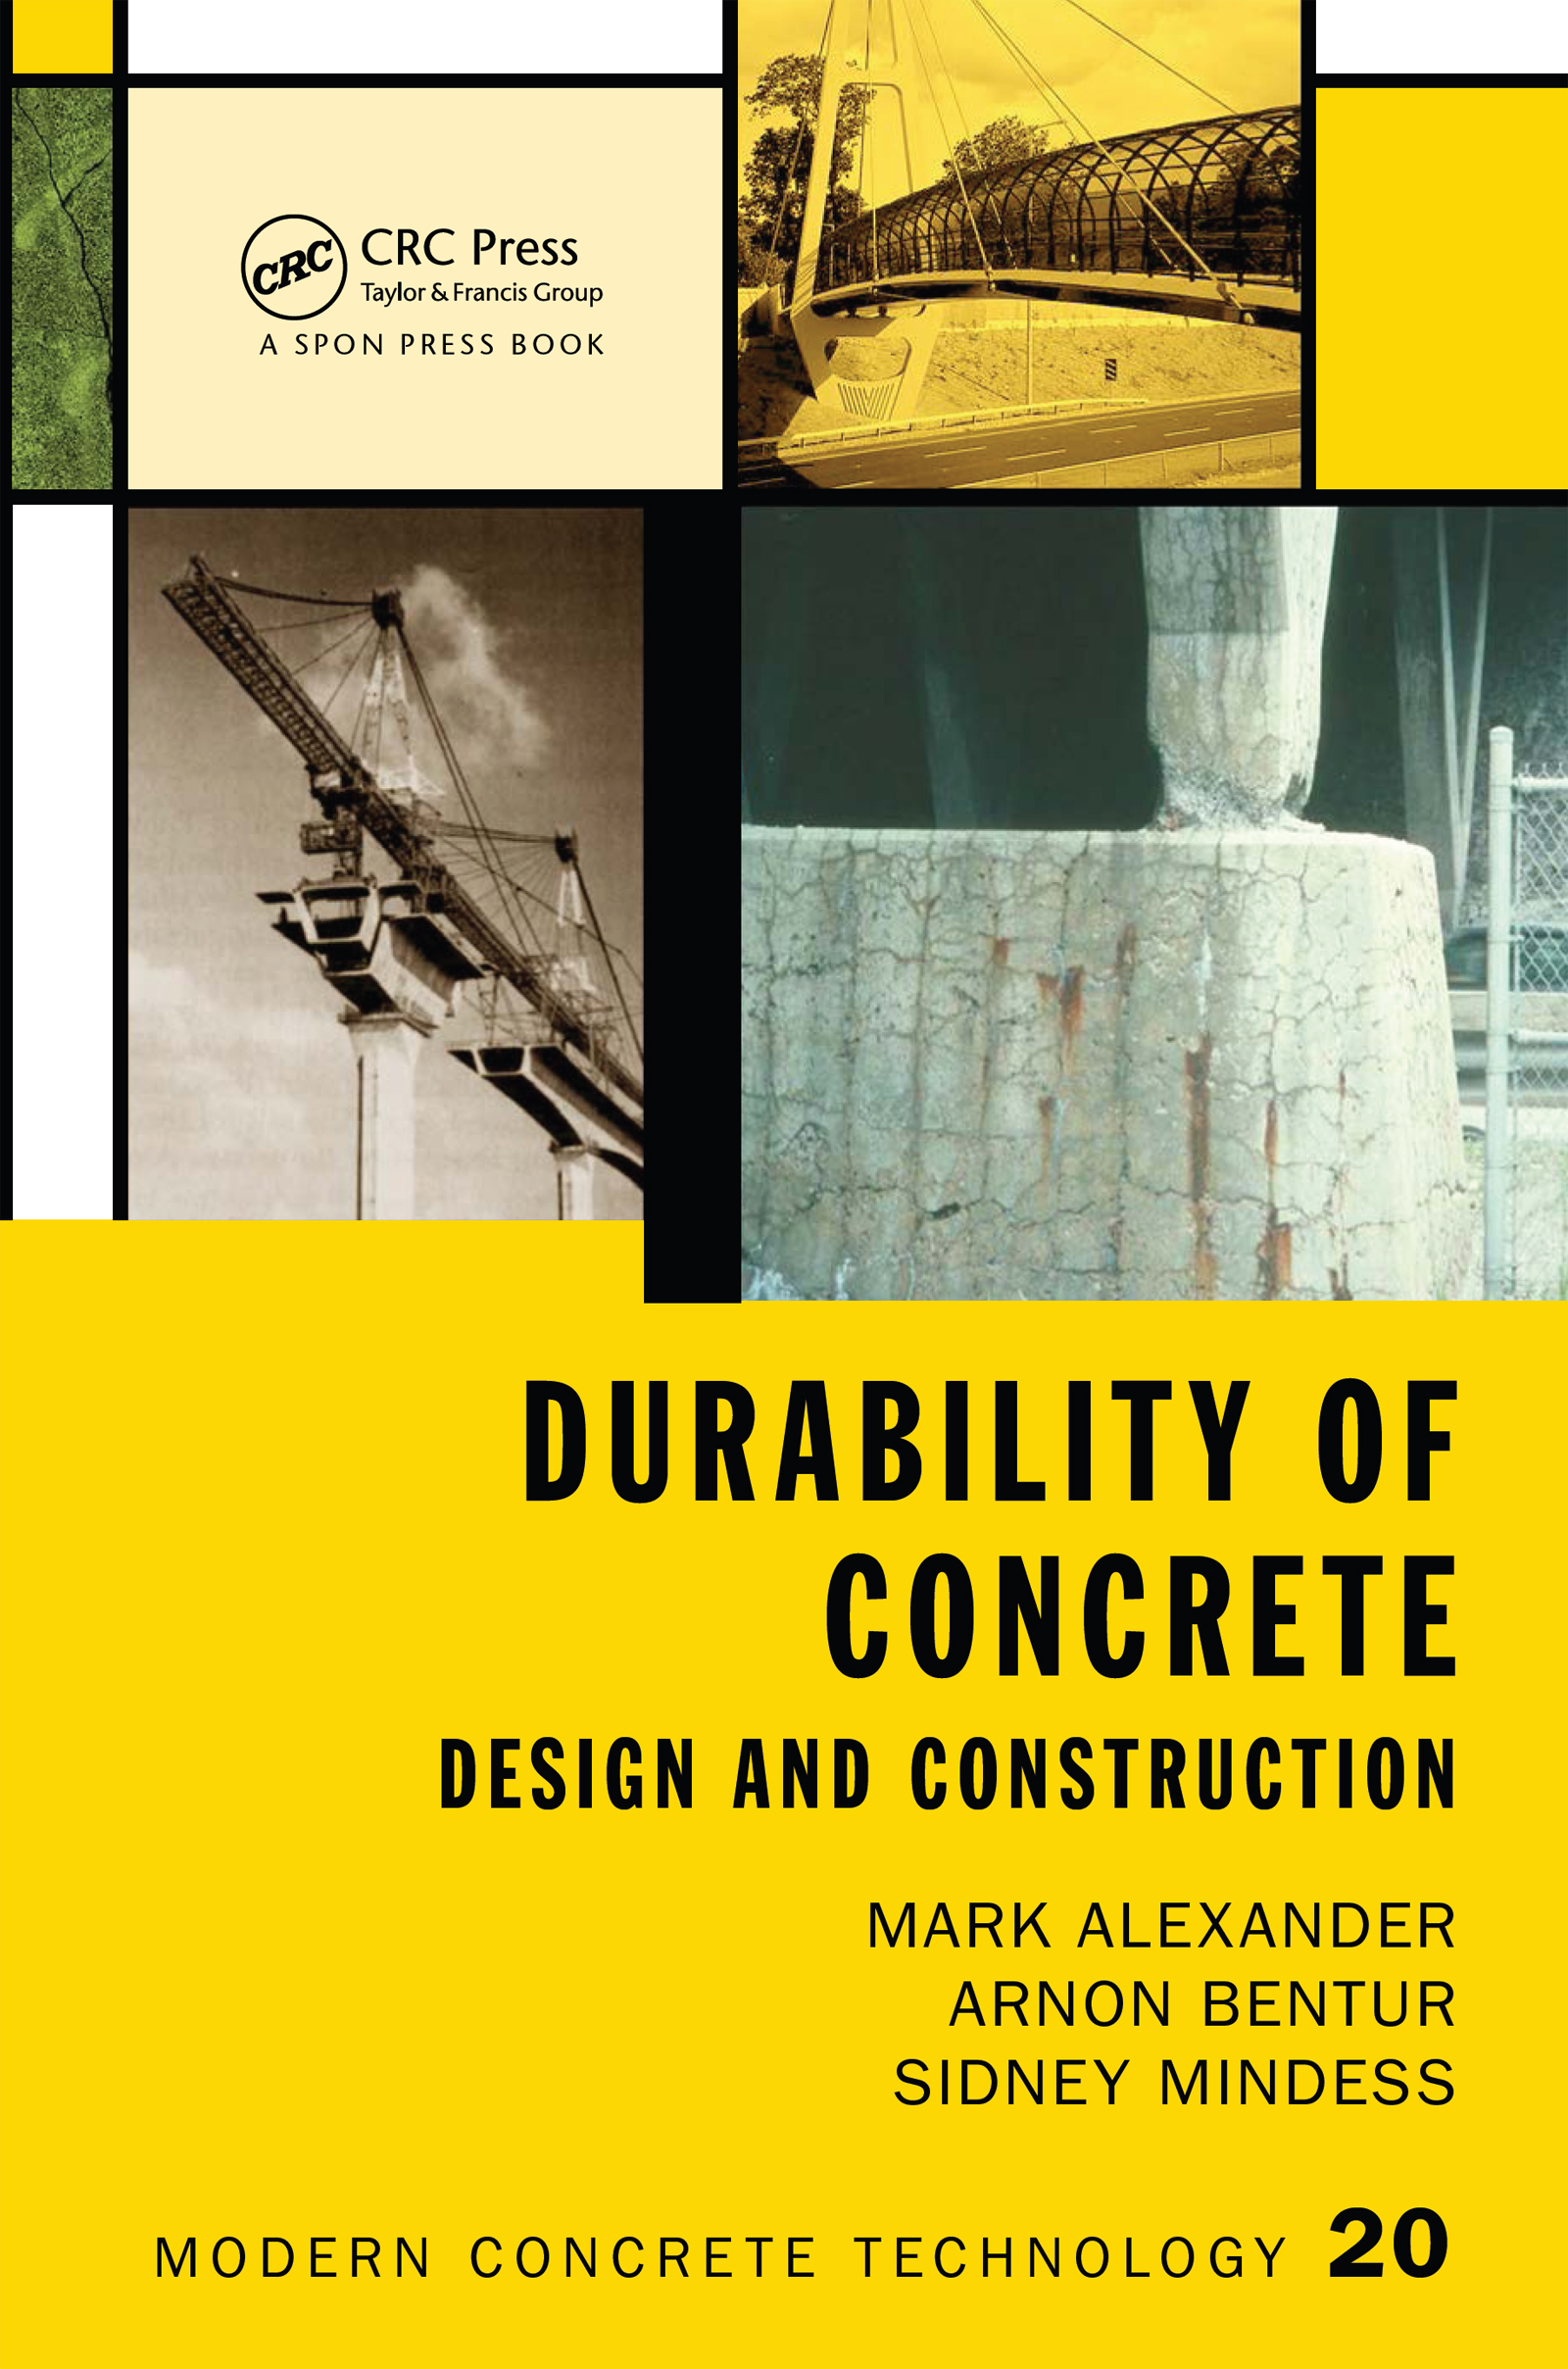 Durability of Concrete Design and Construction book cover